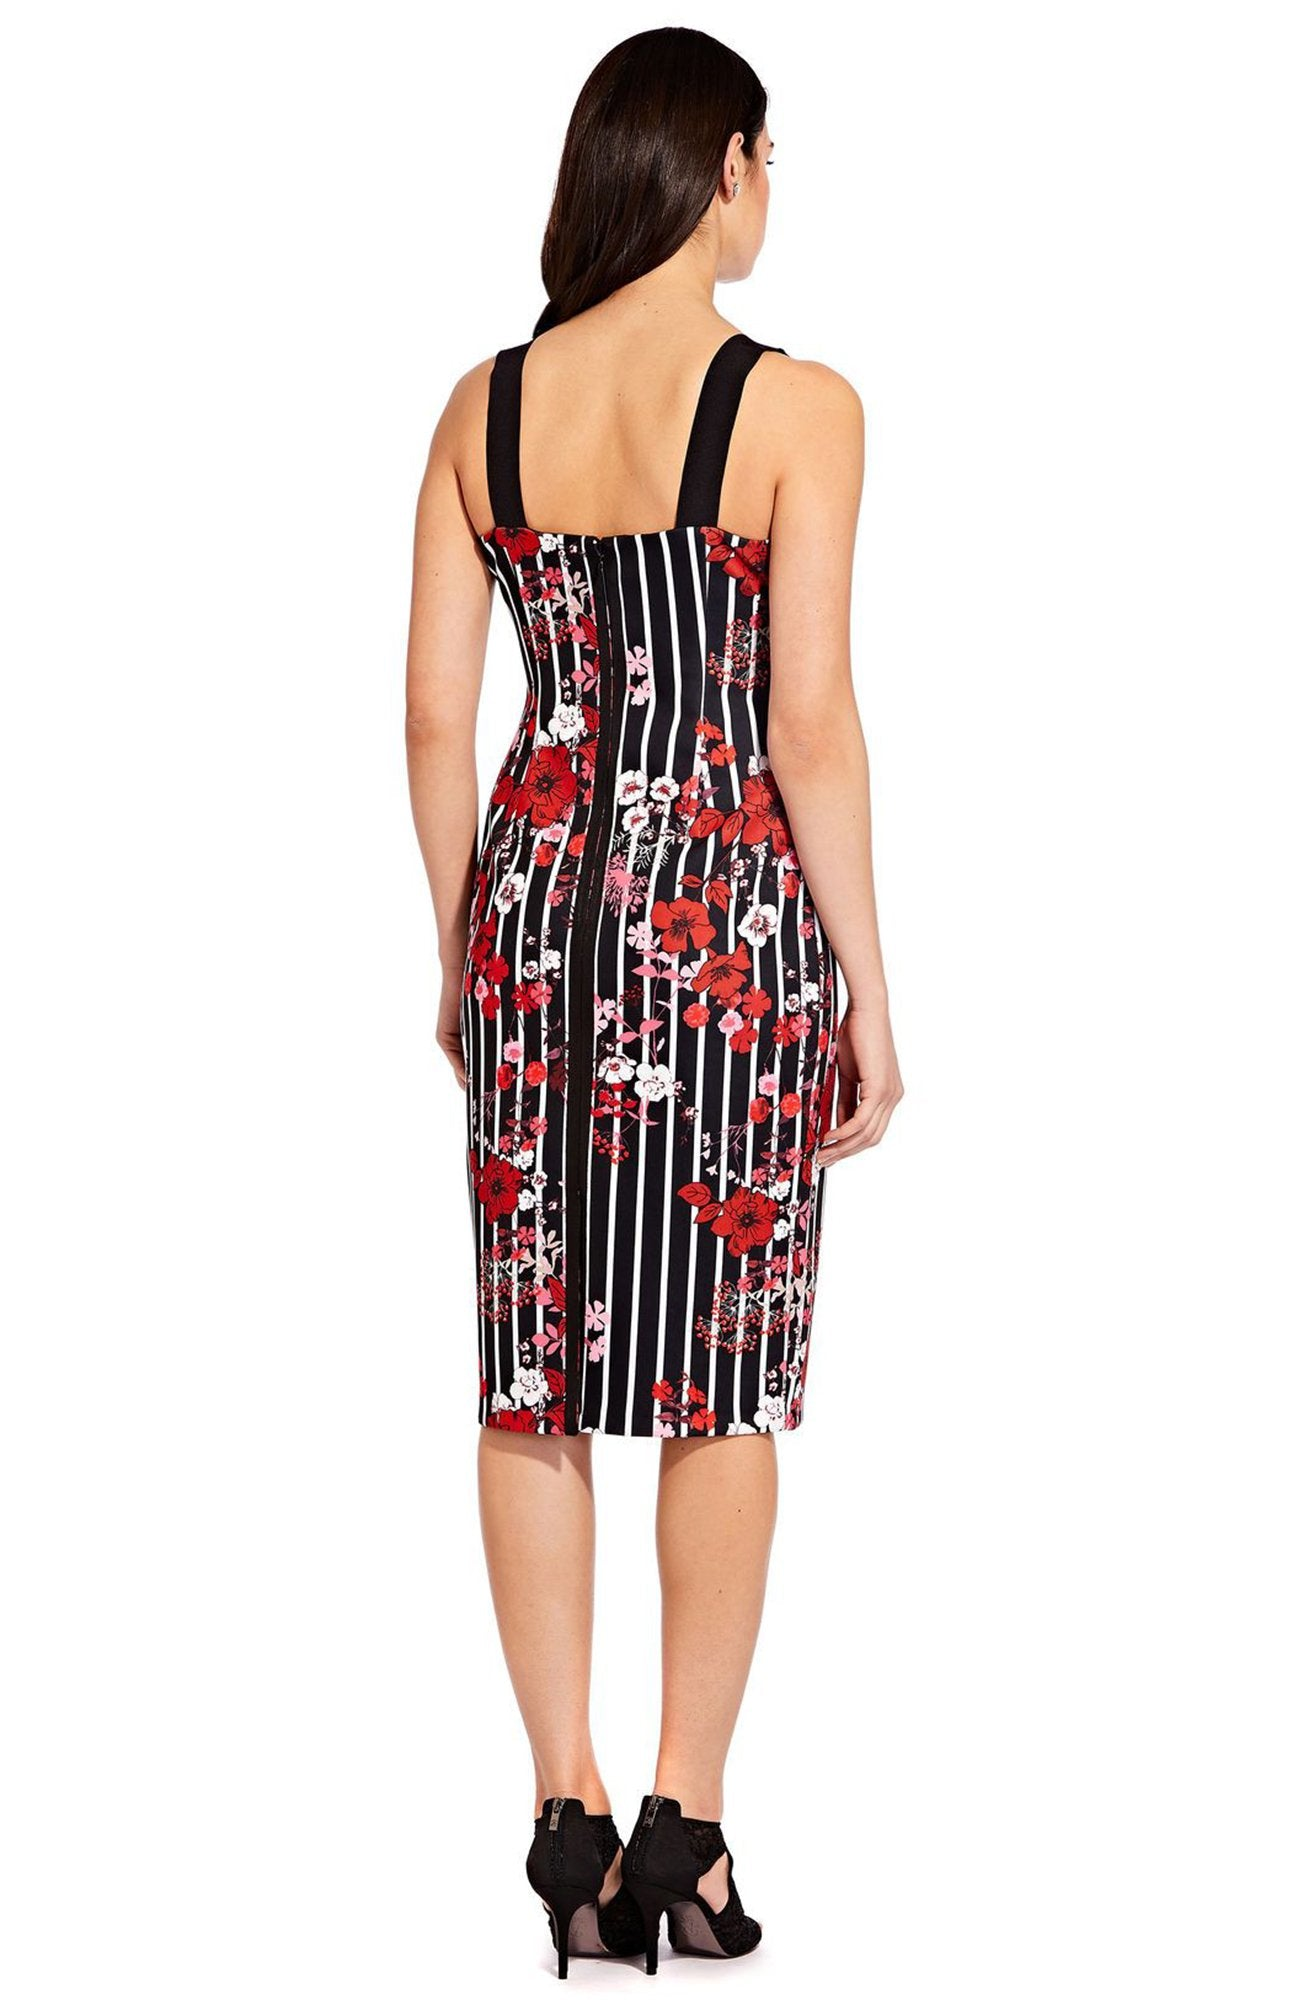 Adrianna Papell - AP1D103092 Printed Scuba Square Neck Fitted Dress In Black and Multi-Color